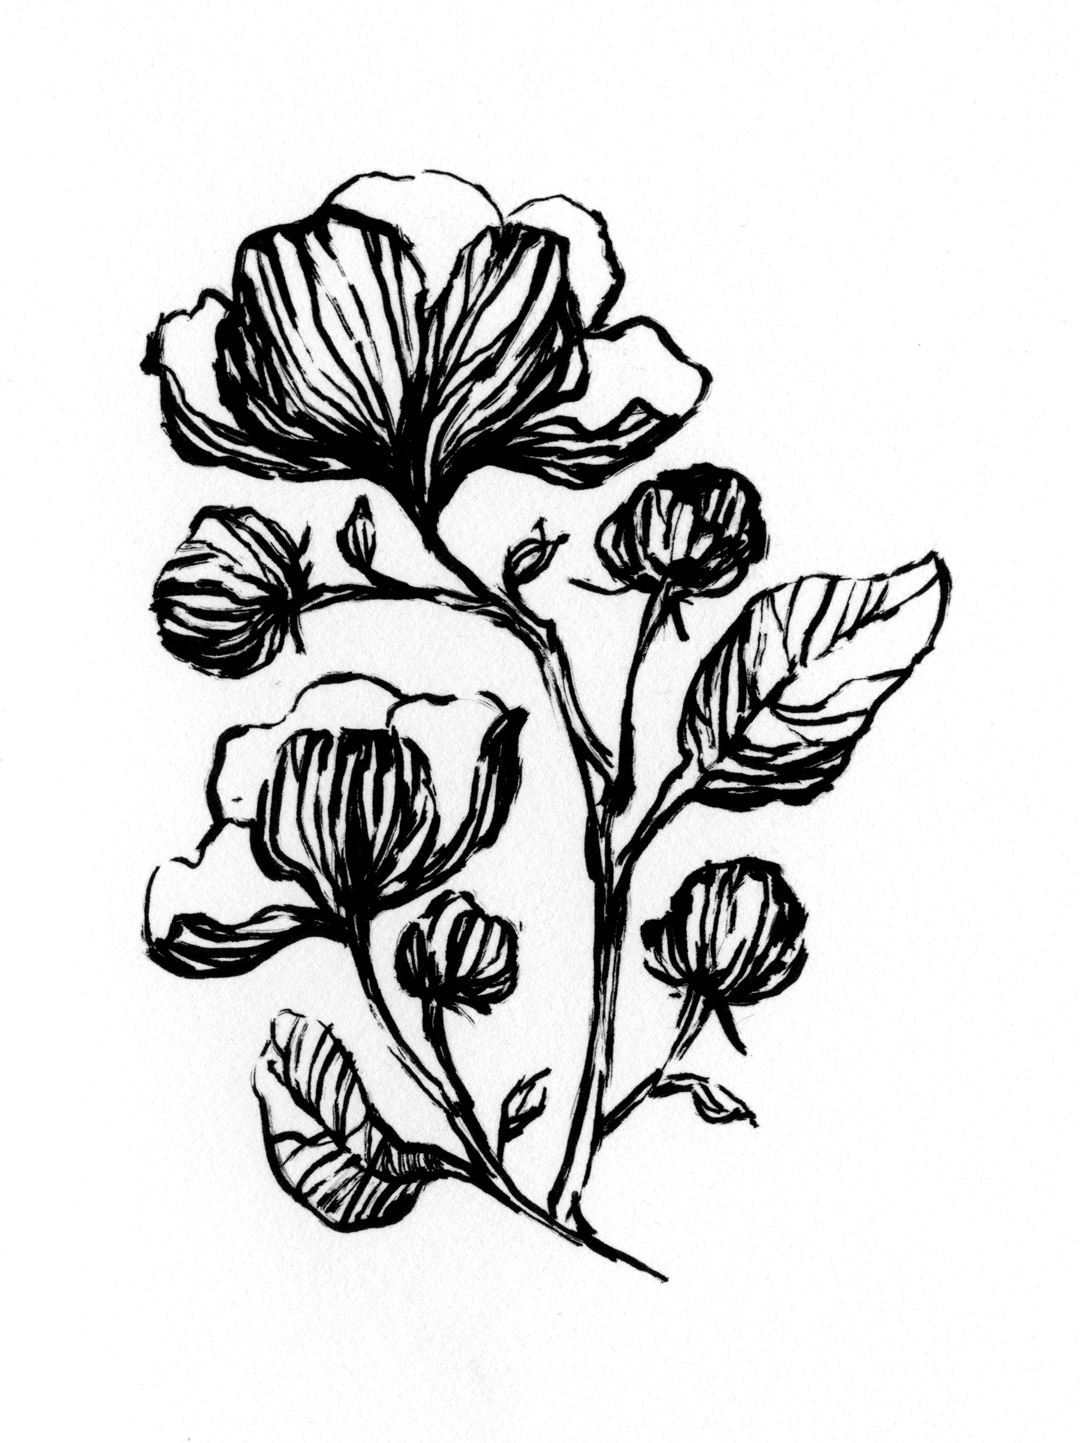 Flower illustration by Laura Dreyer, drawn in ink.